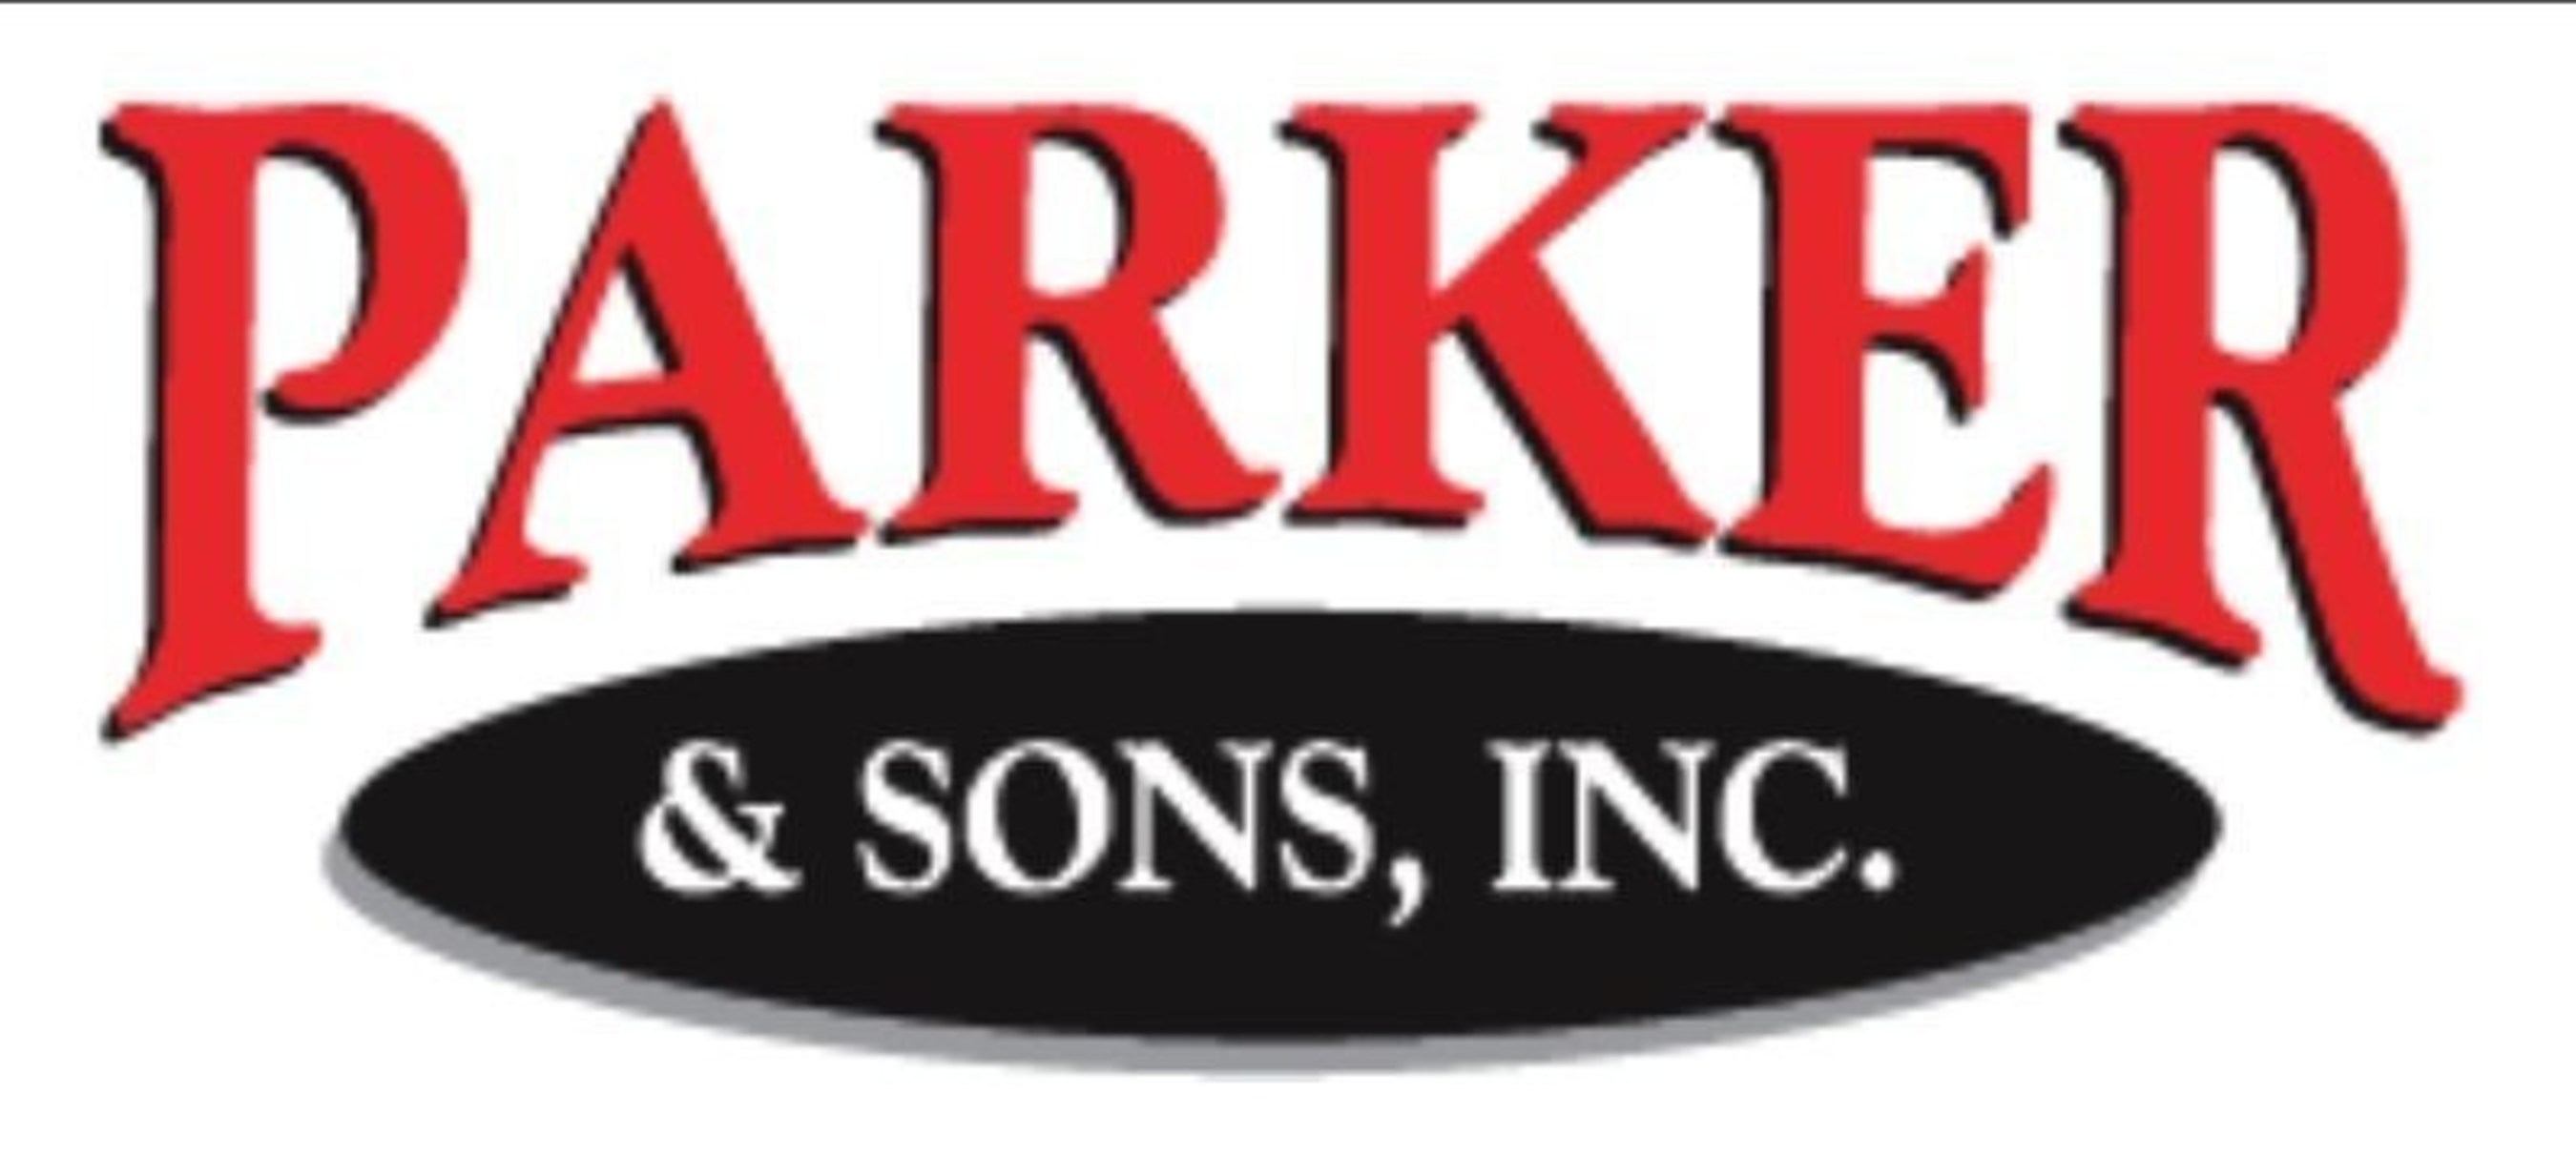 Parker and Sons Offers Coupon for Free AC, Heater, or Plumbing Diagnosis